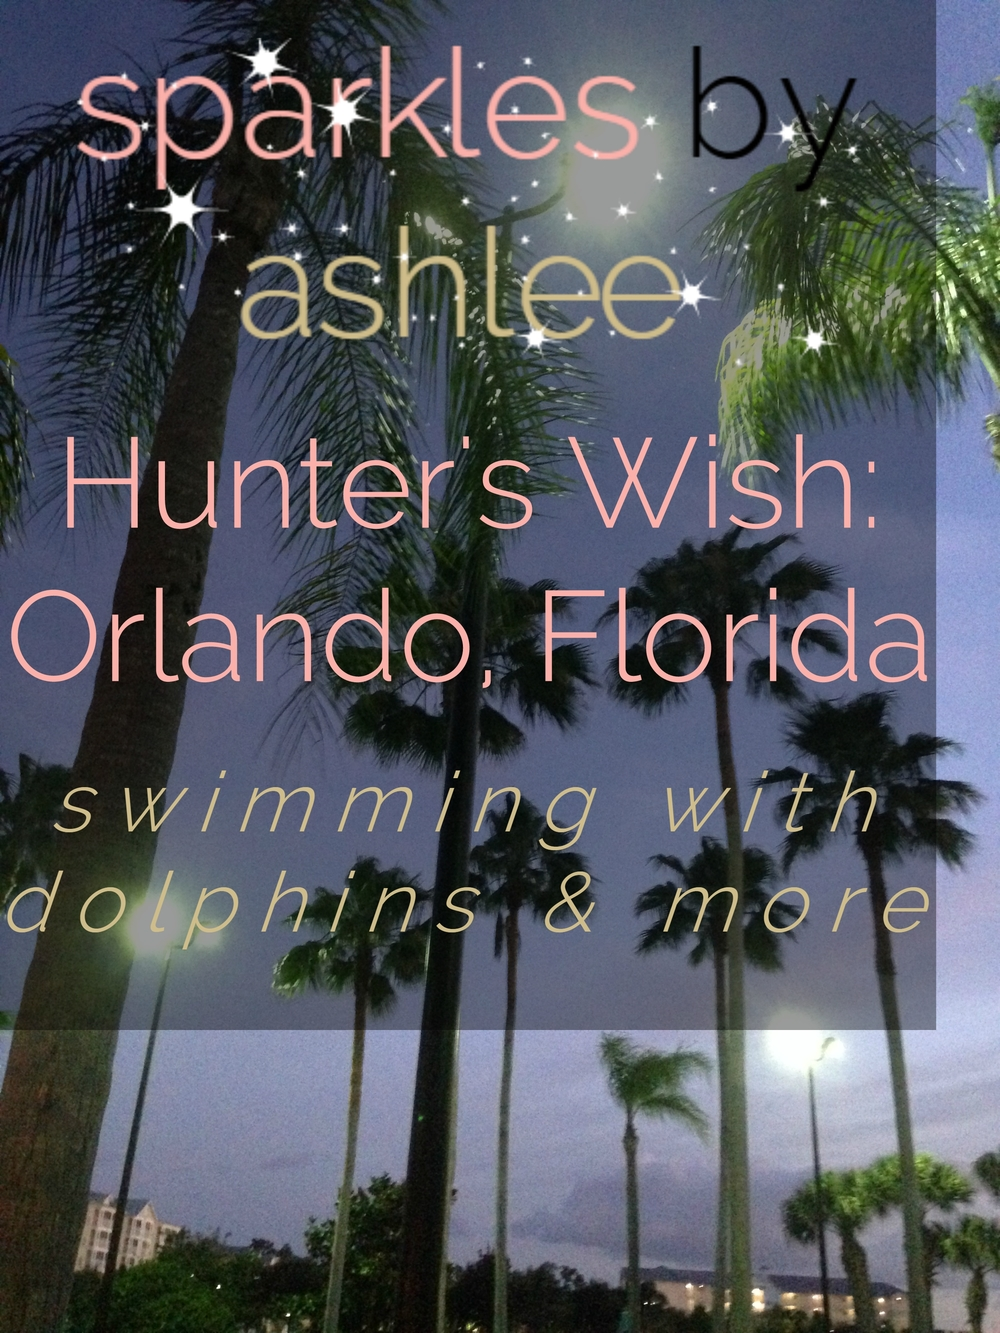 Hunters-Wish-Orlando-Florida-Sparkles-by-Ashlee.jpg